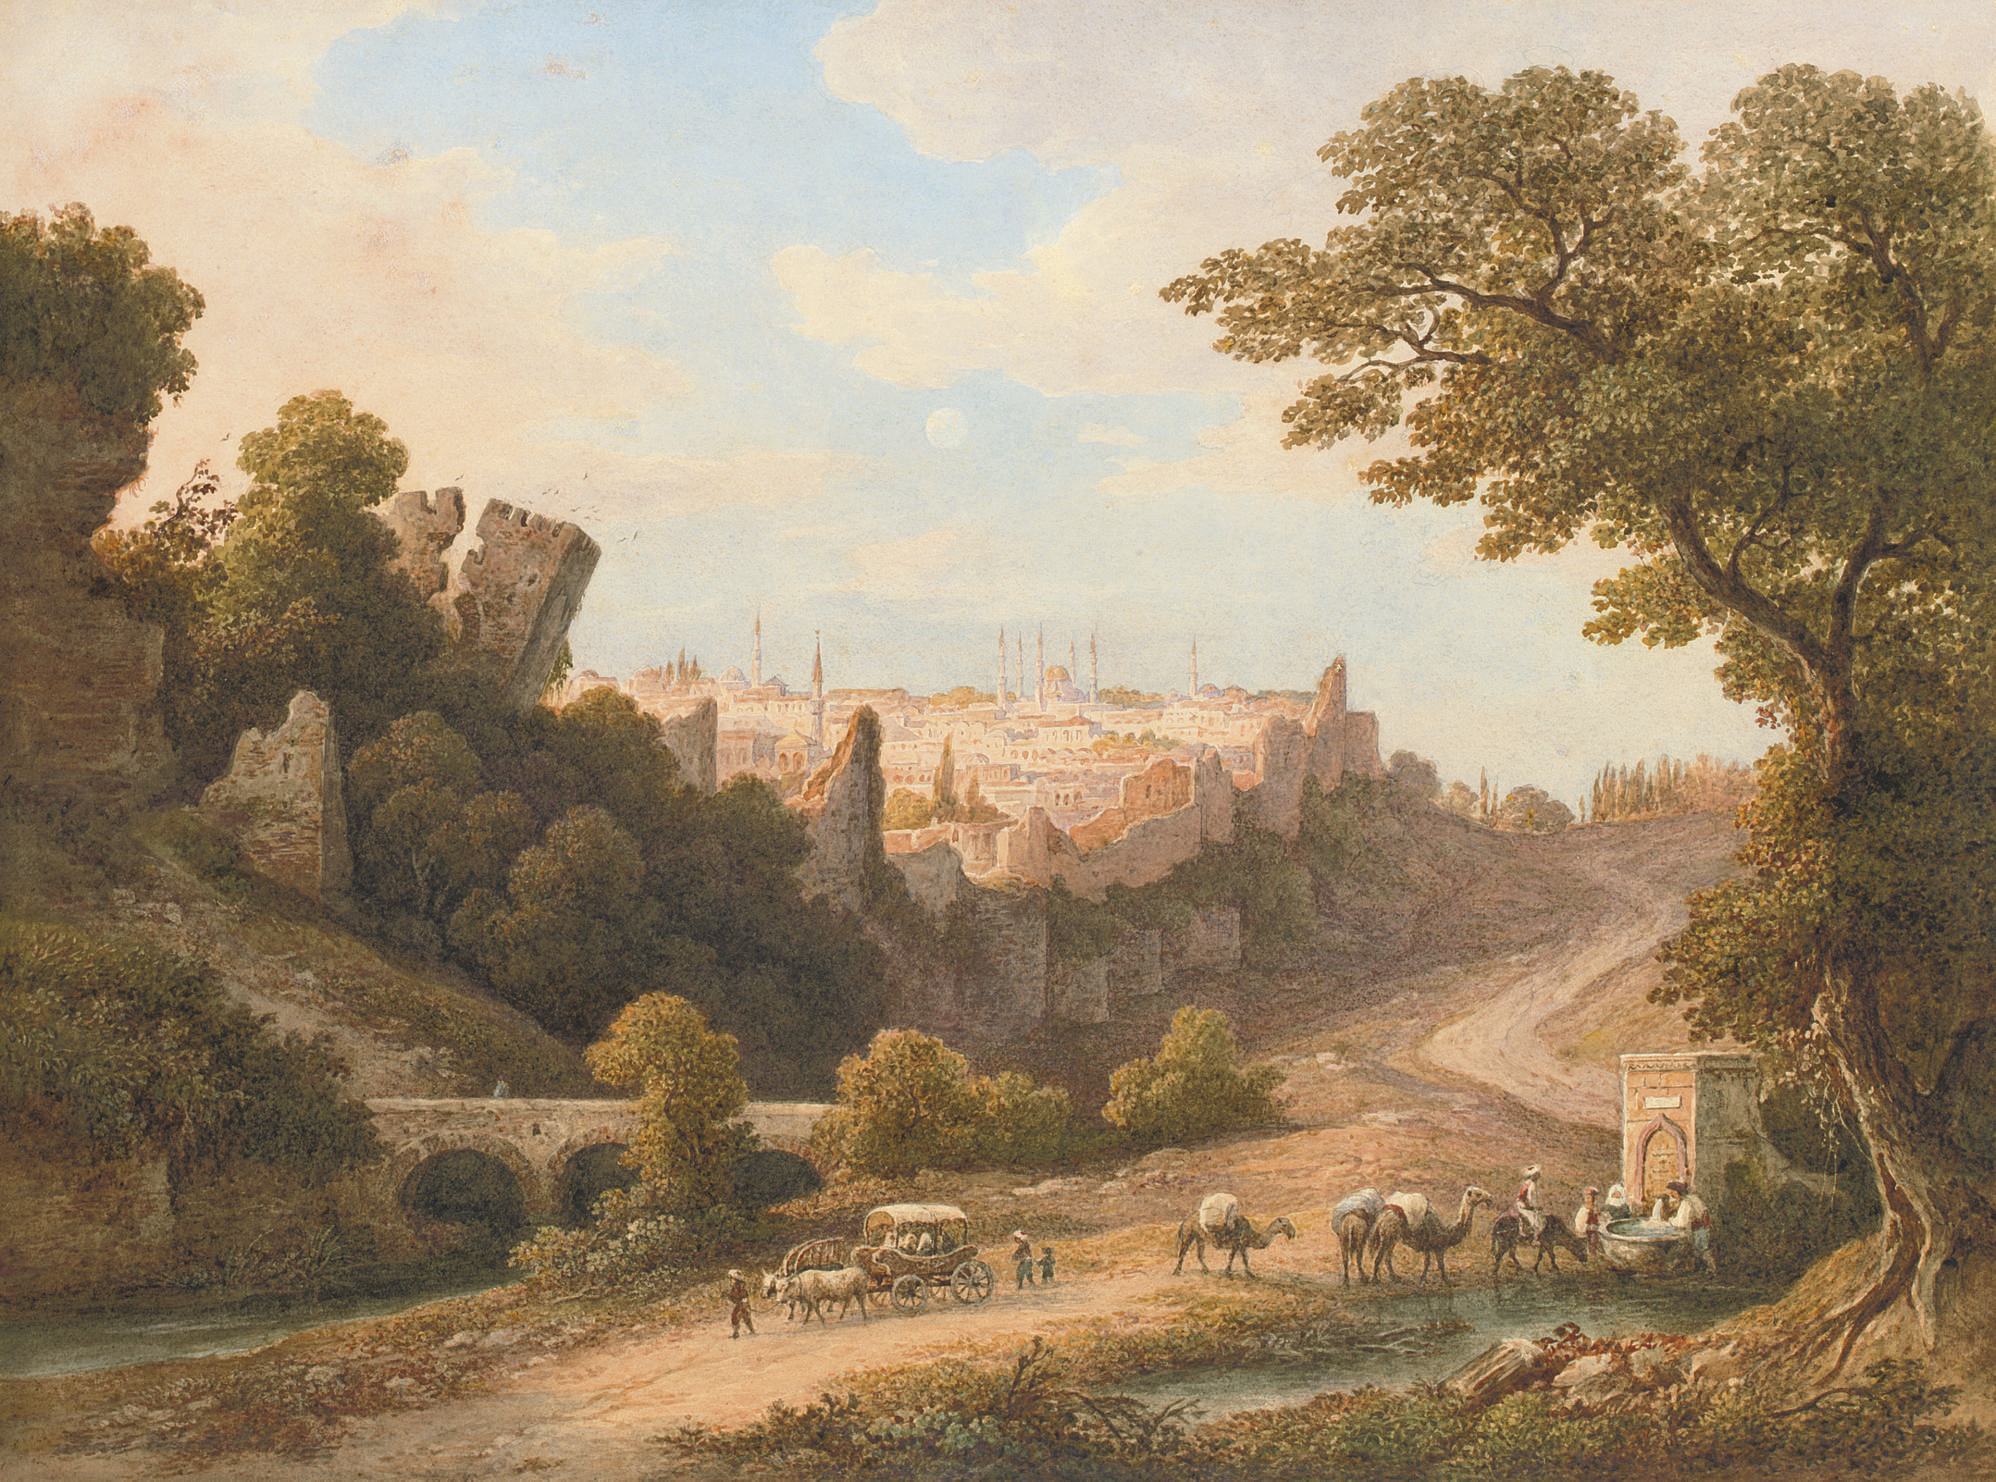 View of Constantinople with camels watering and travellers on a track in the foreground